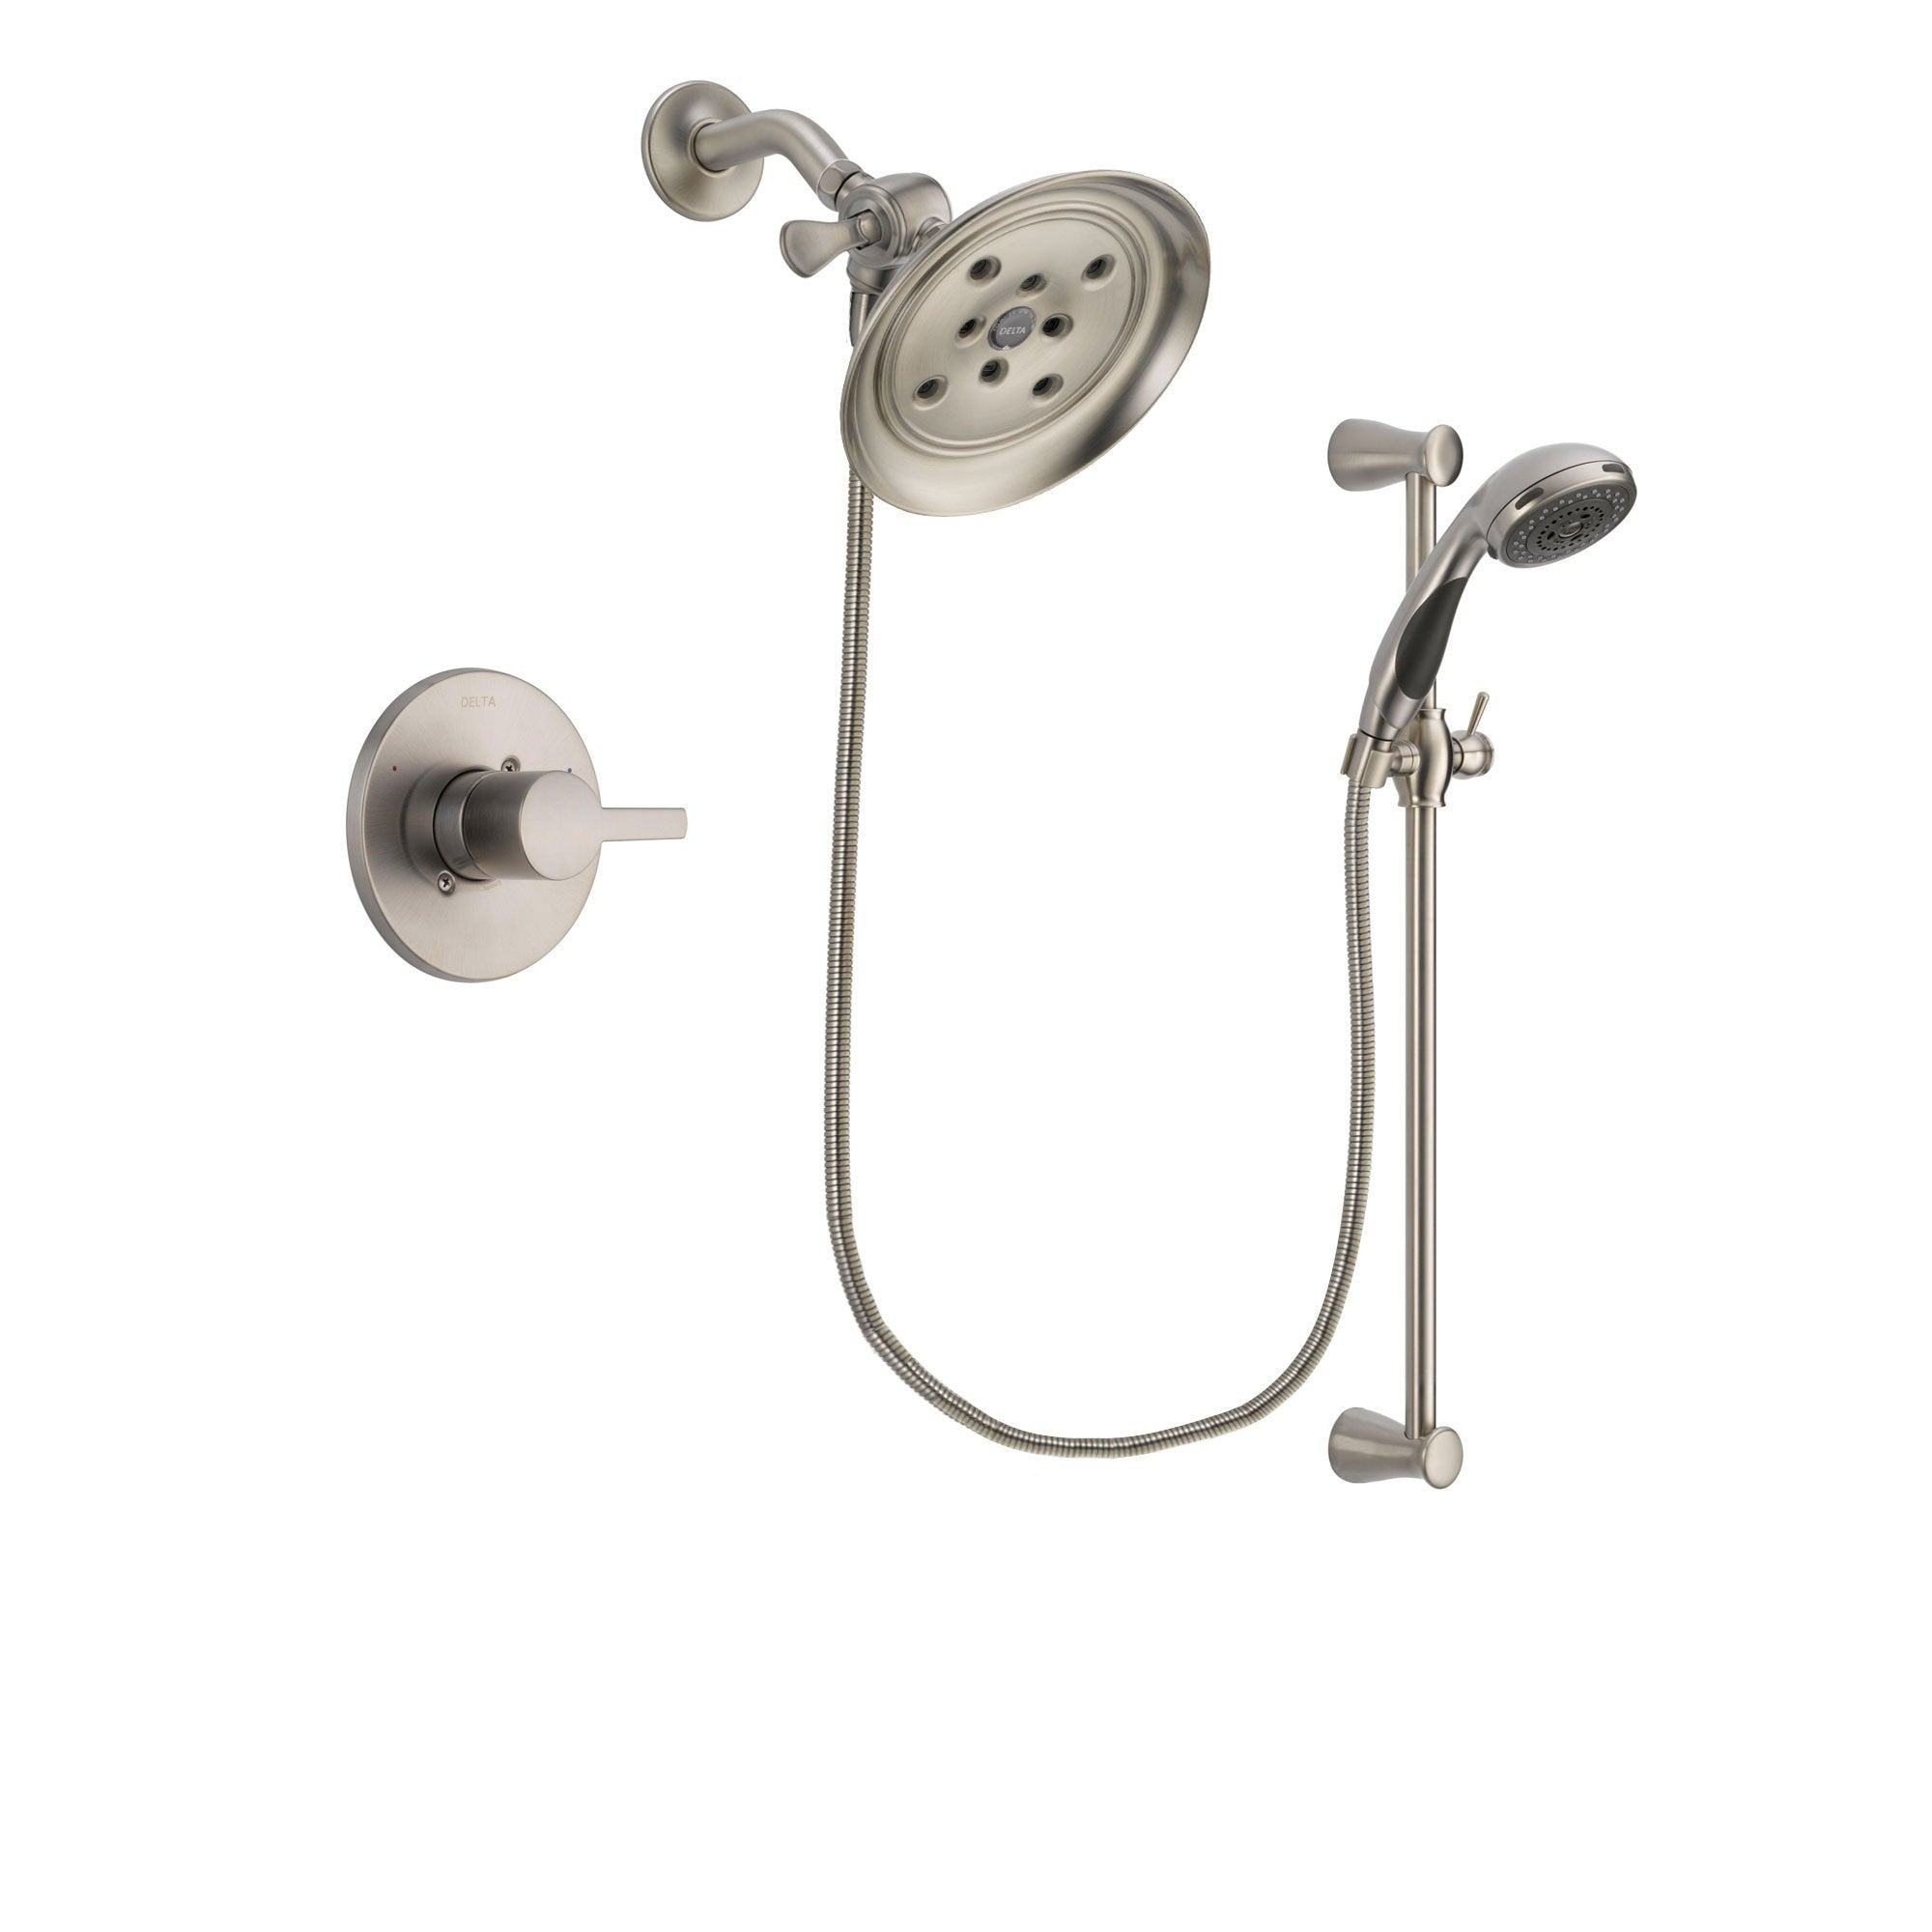 Delta Compel Stainless Steel Finish Shower Faucet System w/ Hand Spray DSP1596V